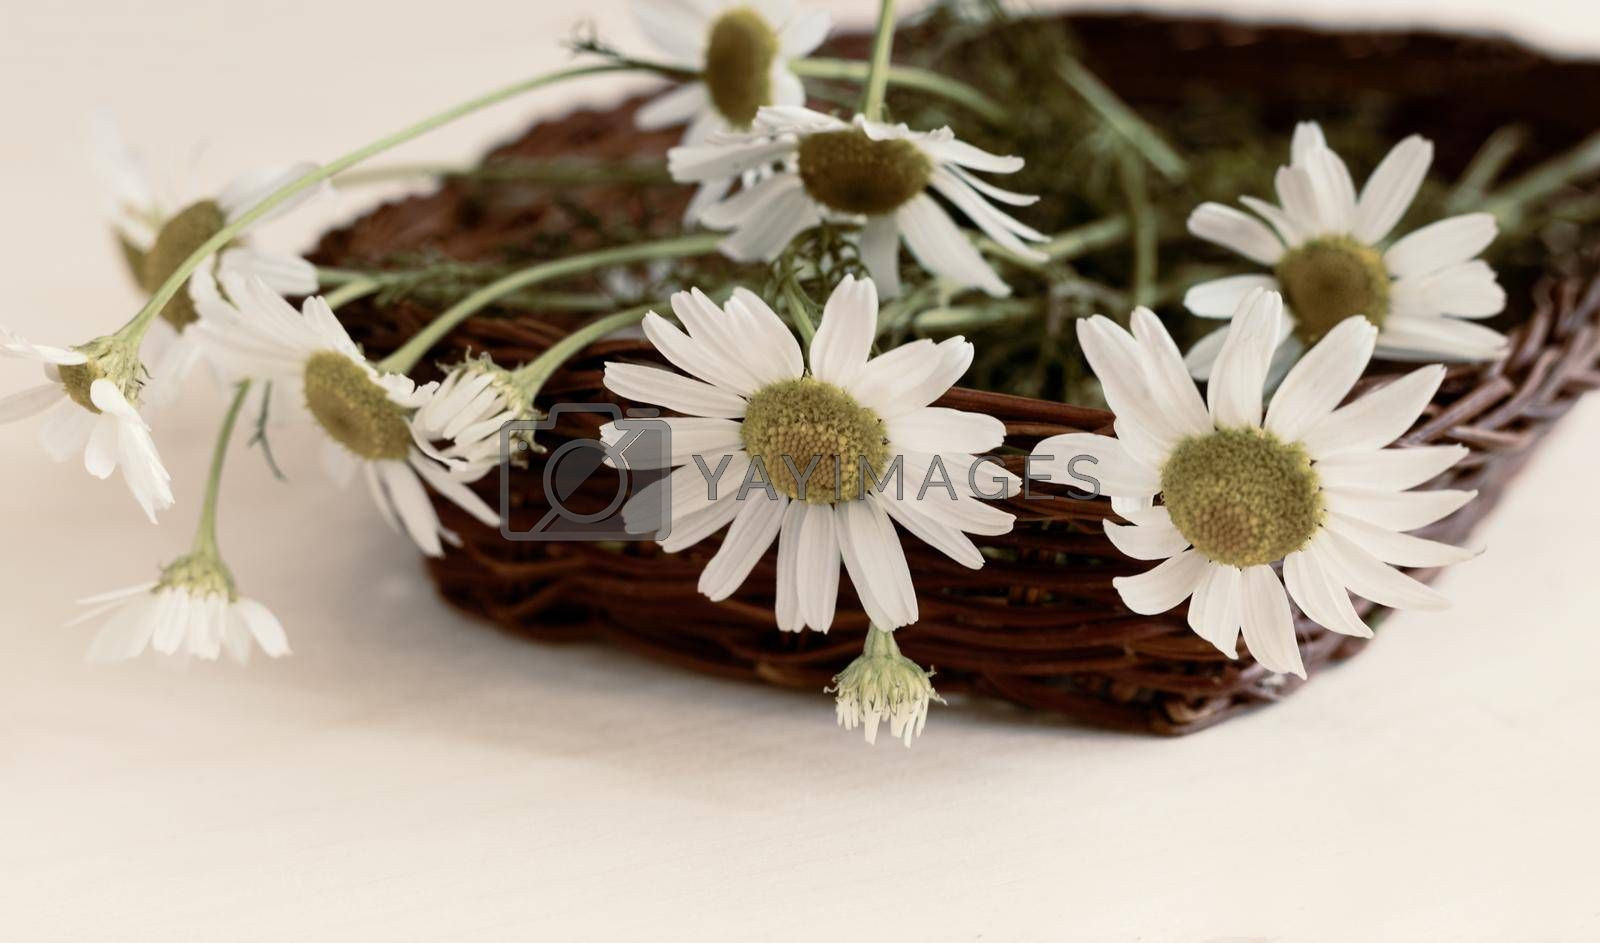 Flowers and leaves of white medicinal chamomile are used for herbal medicine in folk and official medicine.